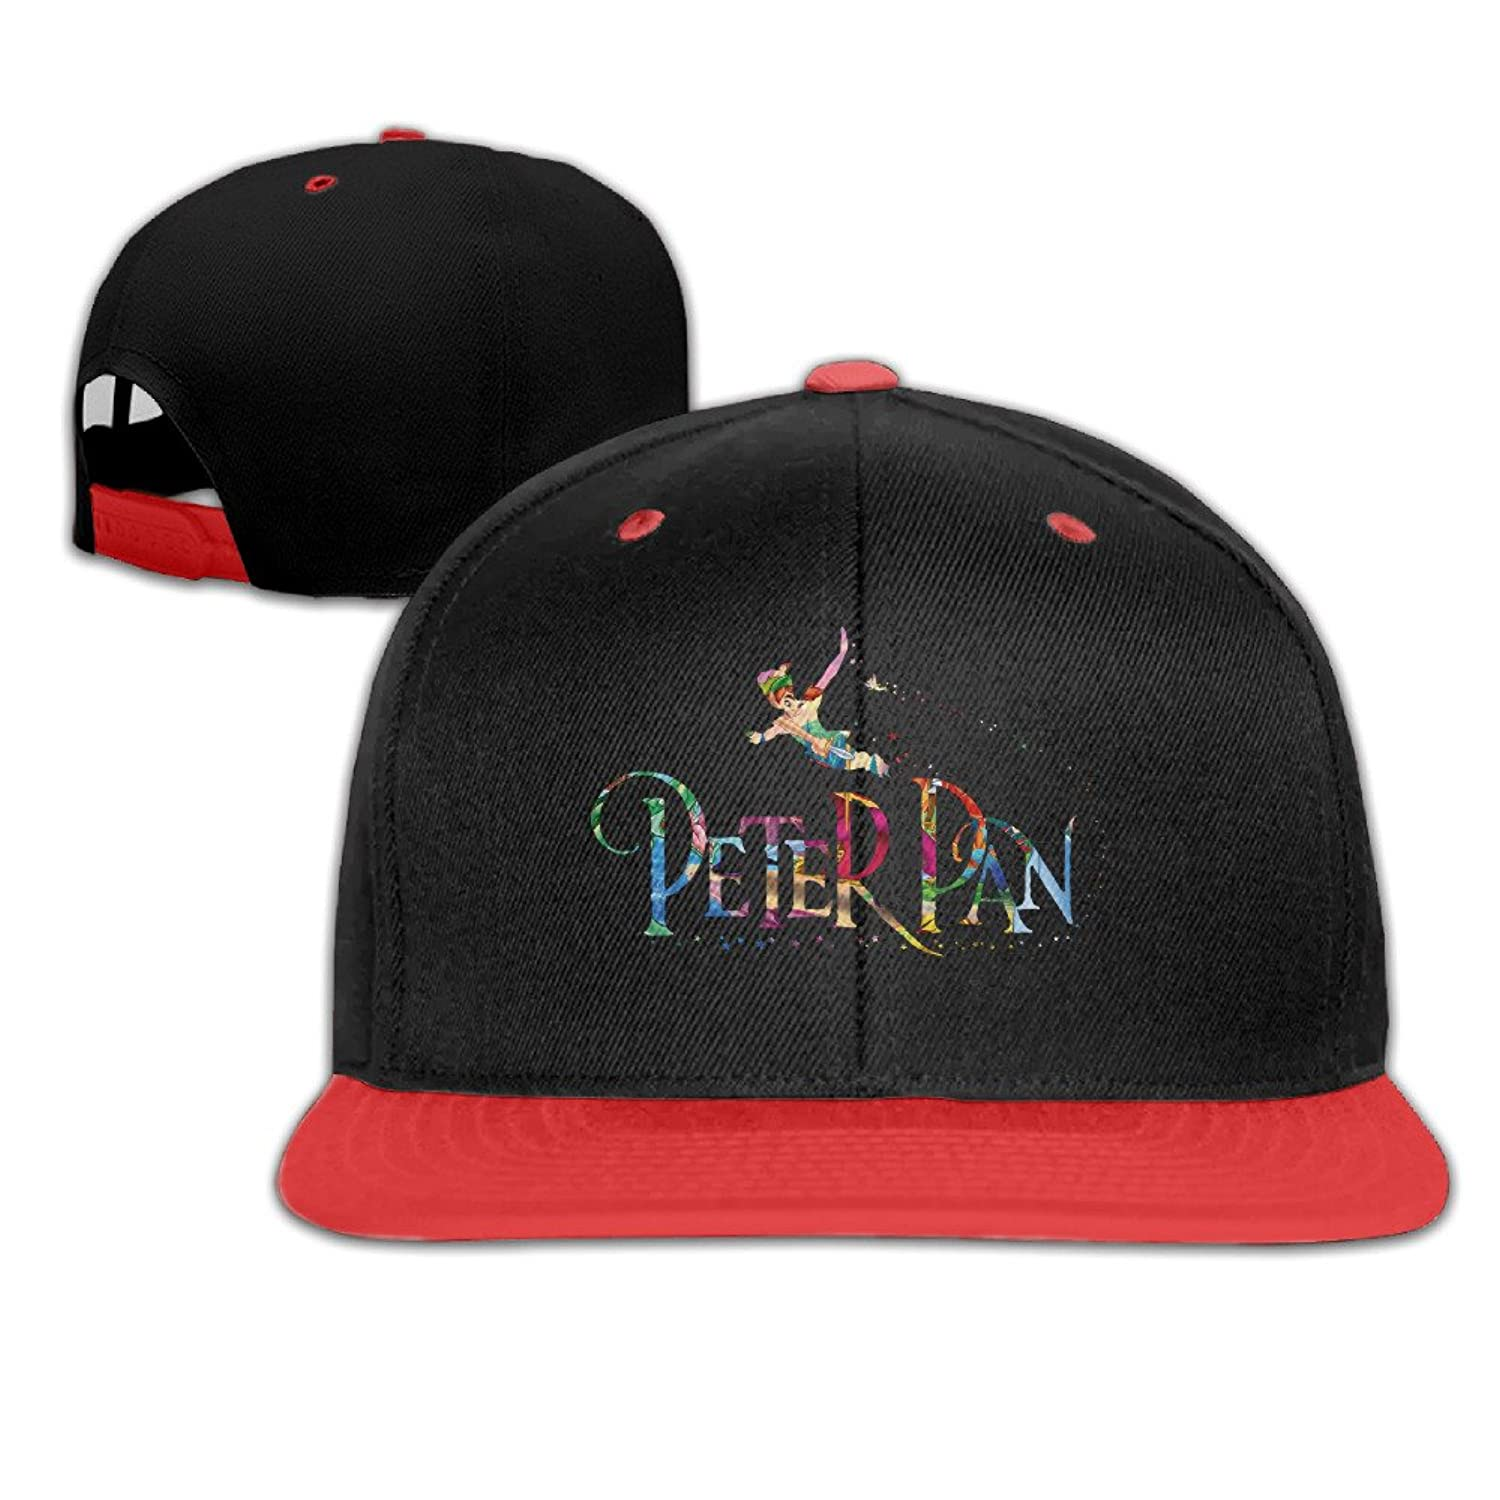 Kids Caps & Hats 2015 Peter Pan Adjustable Snapback Cap